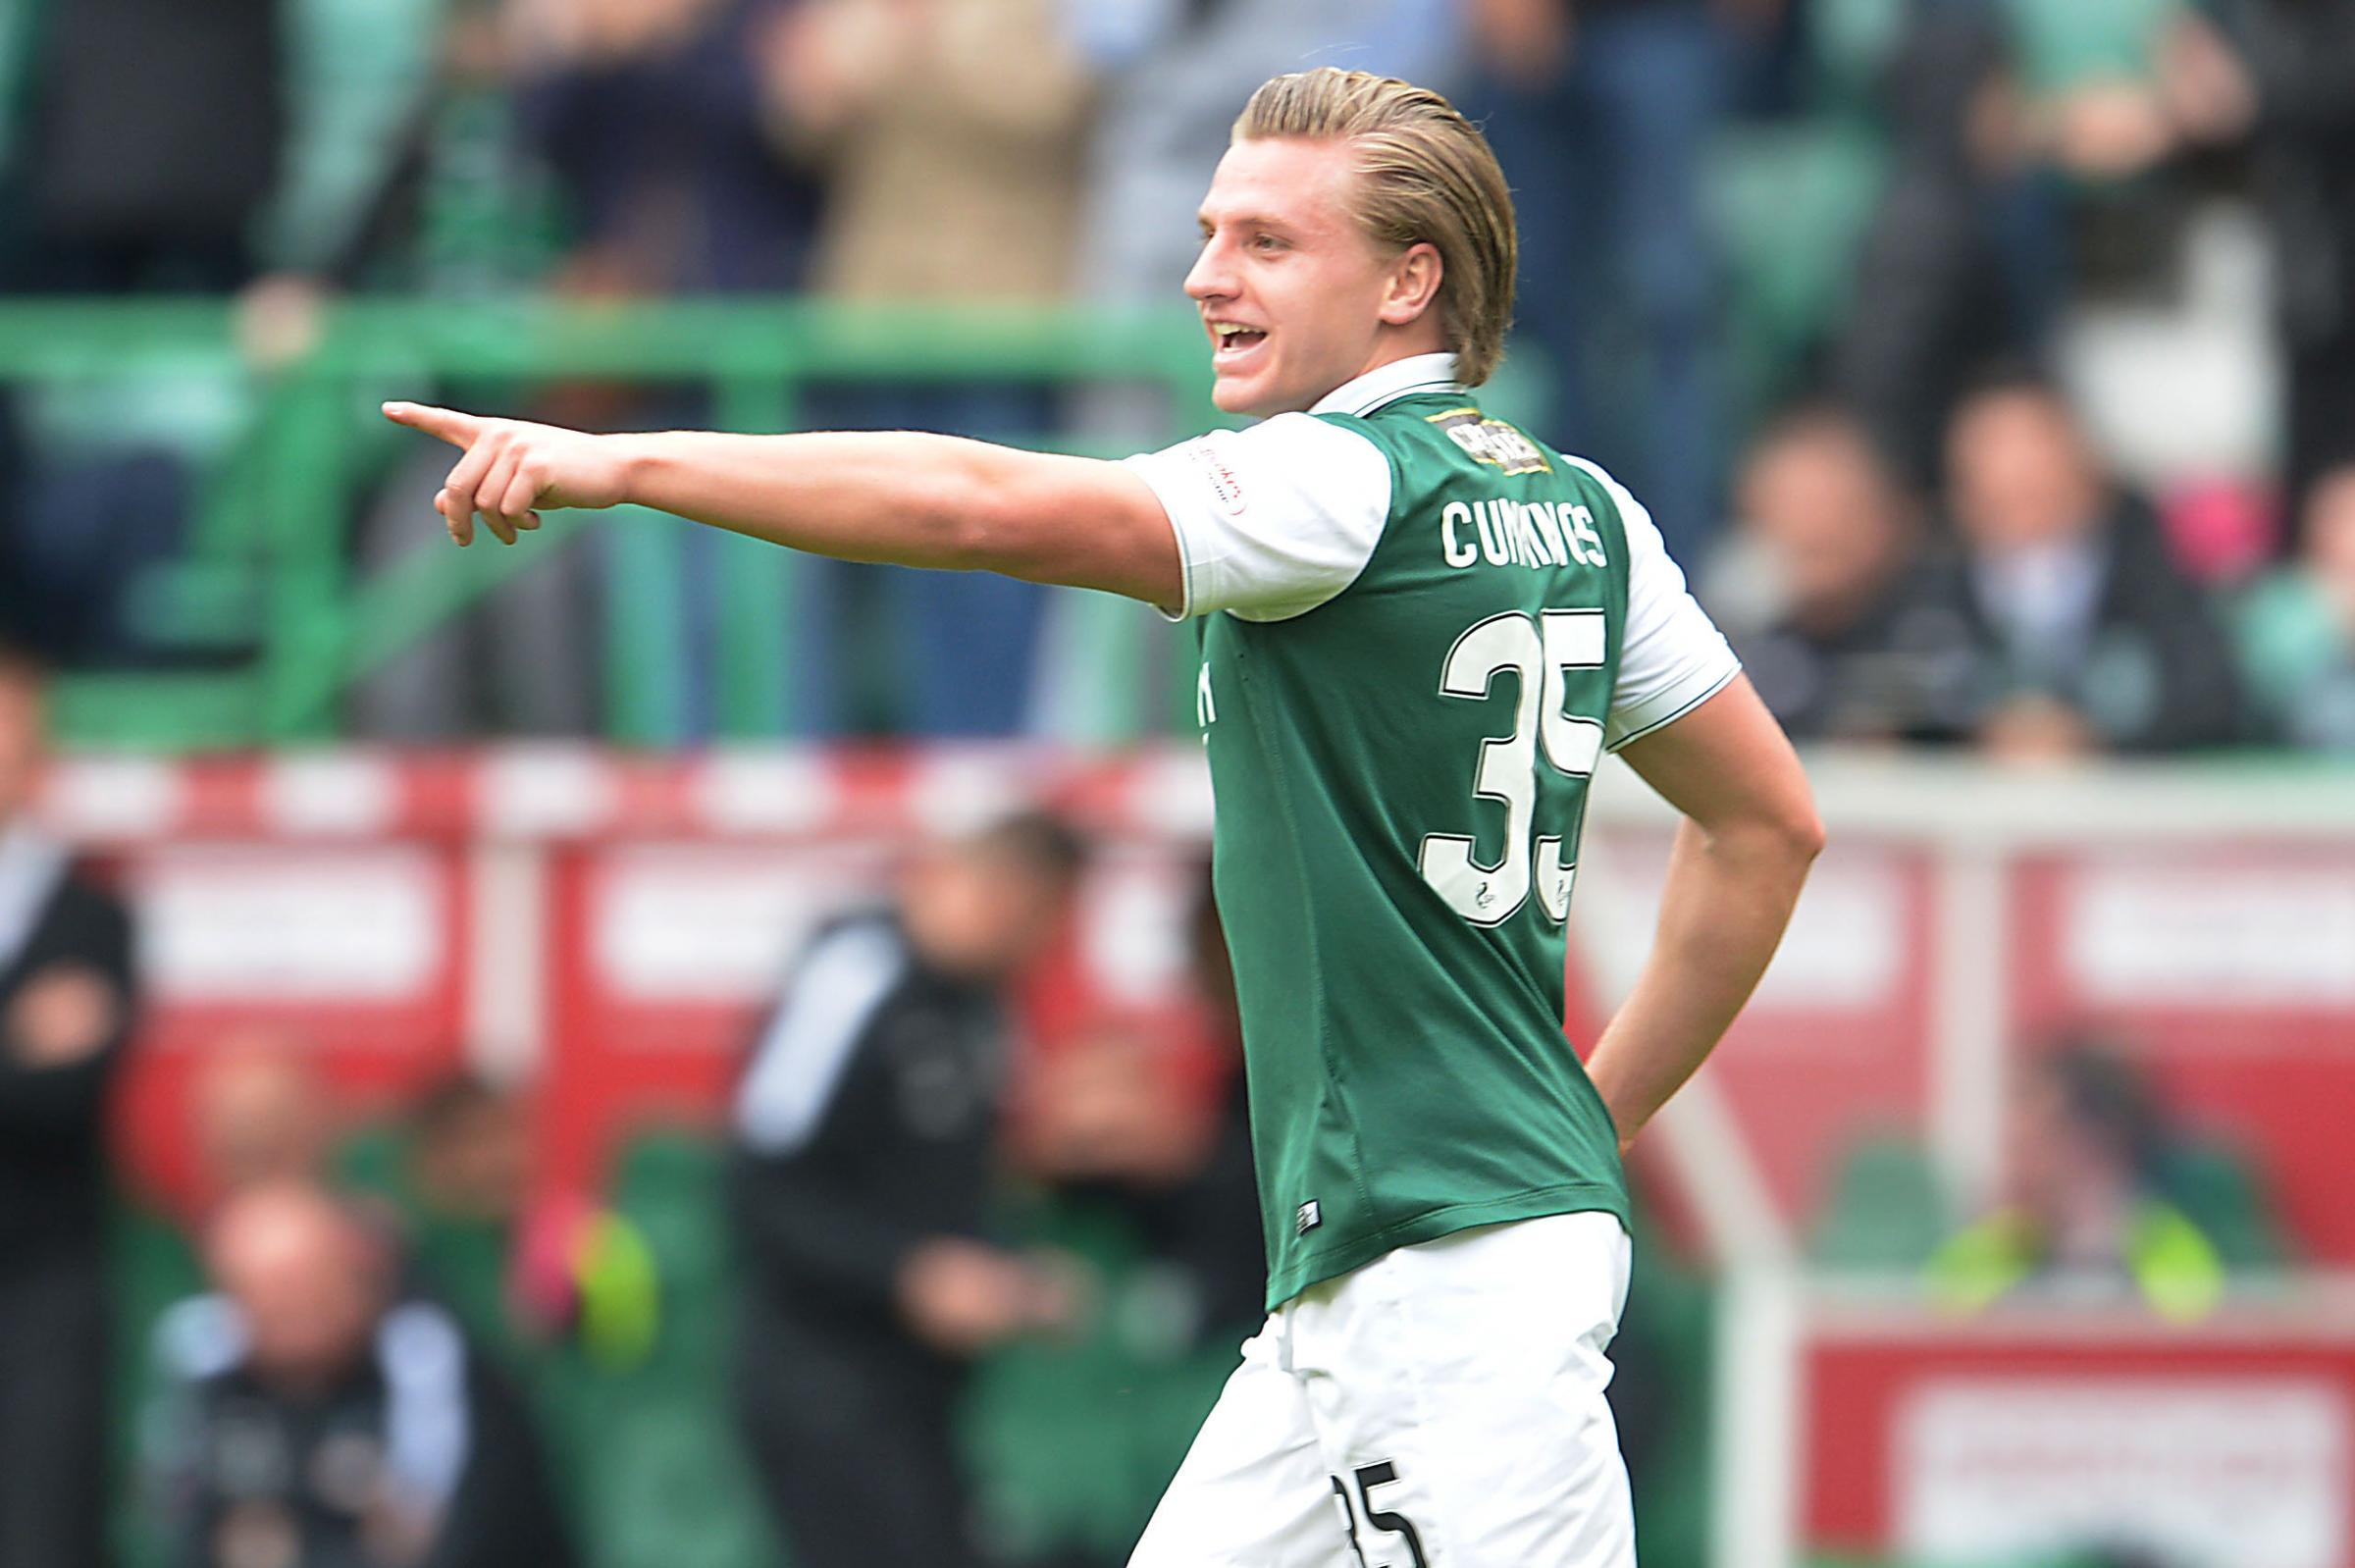 01/05/16 LADBROKES CHAMPIONSHIP .  HIBERNIAN V QUEEN OF THE SOUTH .  EASTER ROAD STADIUM - EDINBURGH .  Hibernian's Jason Cummings celebrates after scoring his side's second goal.